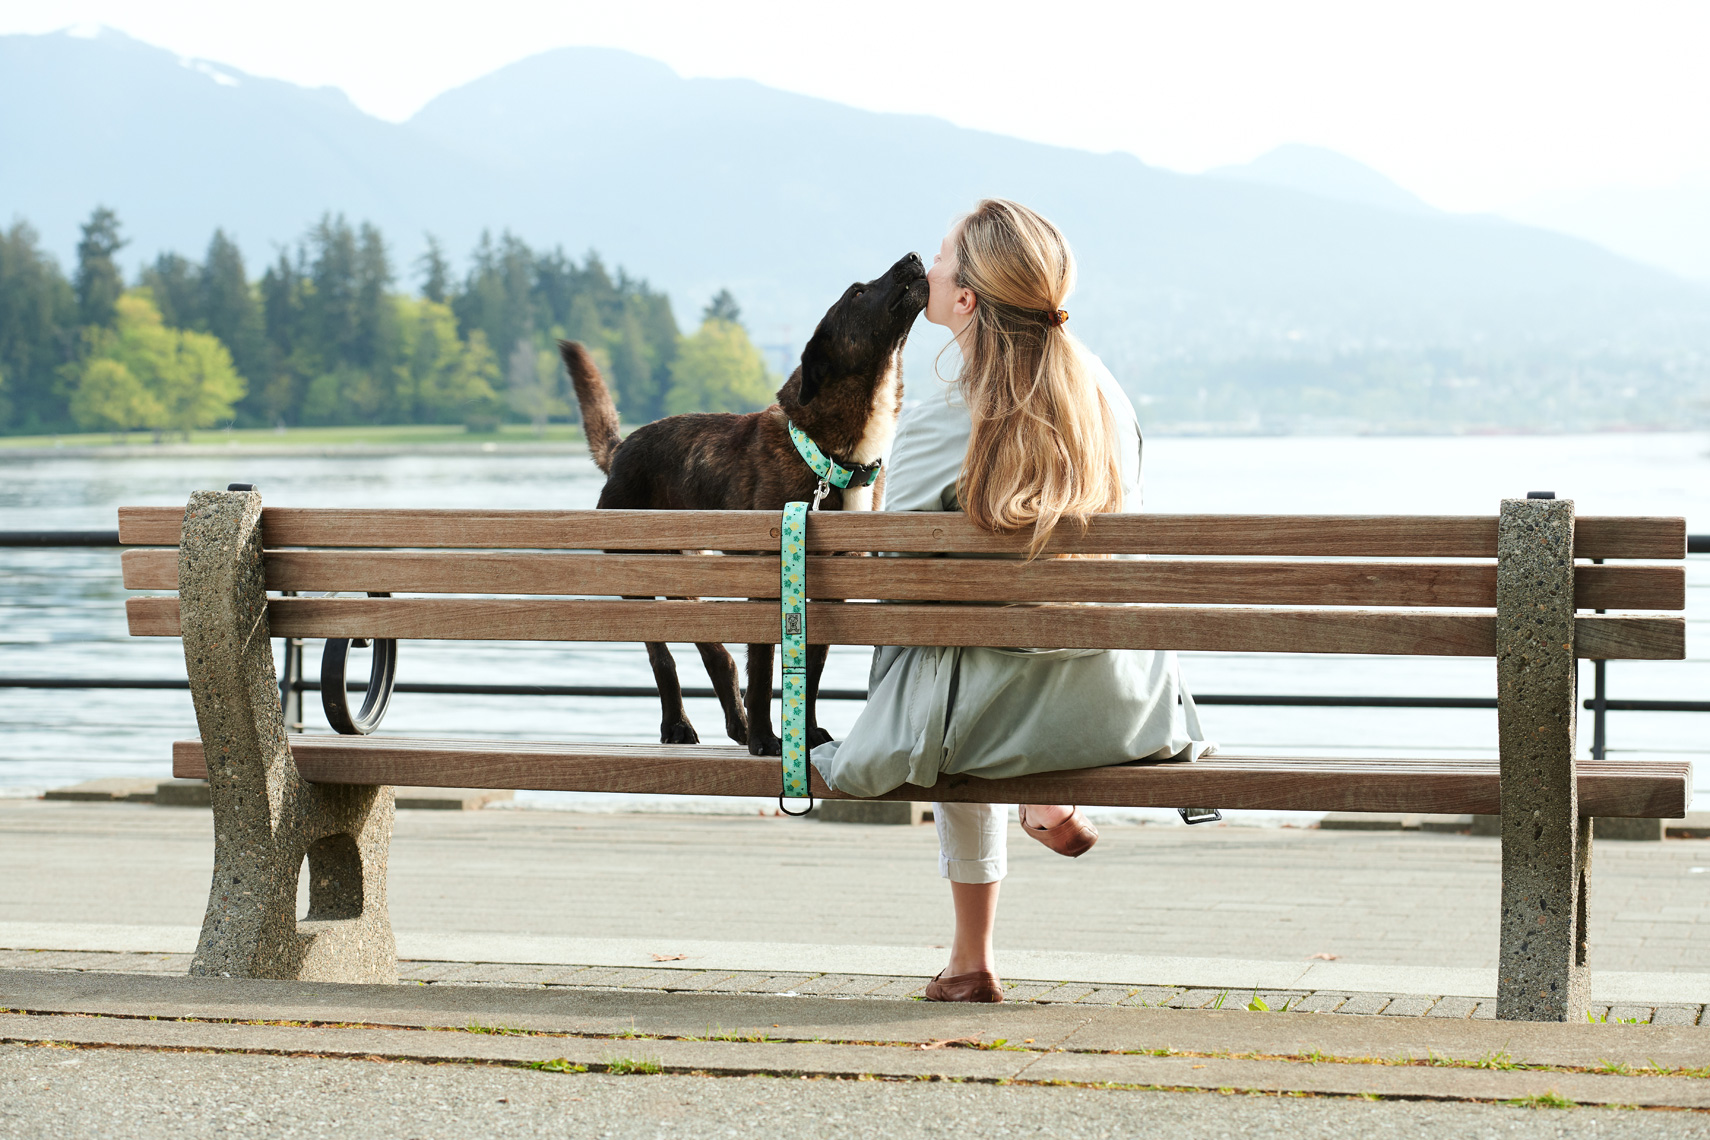 2018-Vancouver-Lifestyle-Photographer-ErichSaide-Advertising-RCPets-Summer-Bench